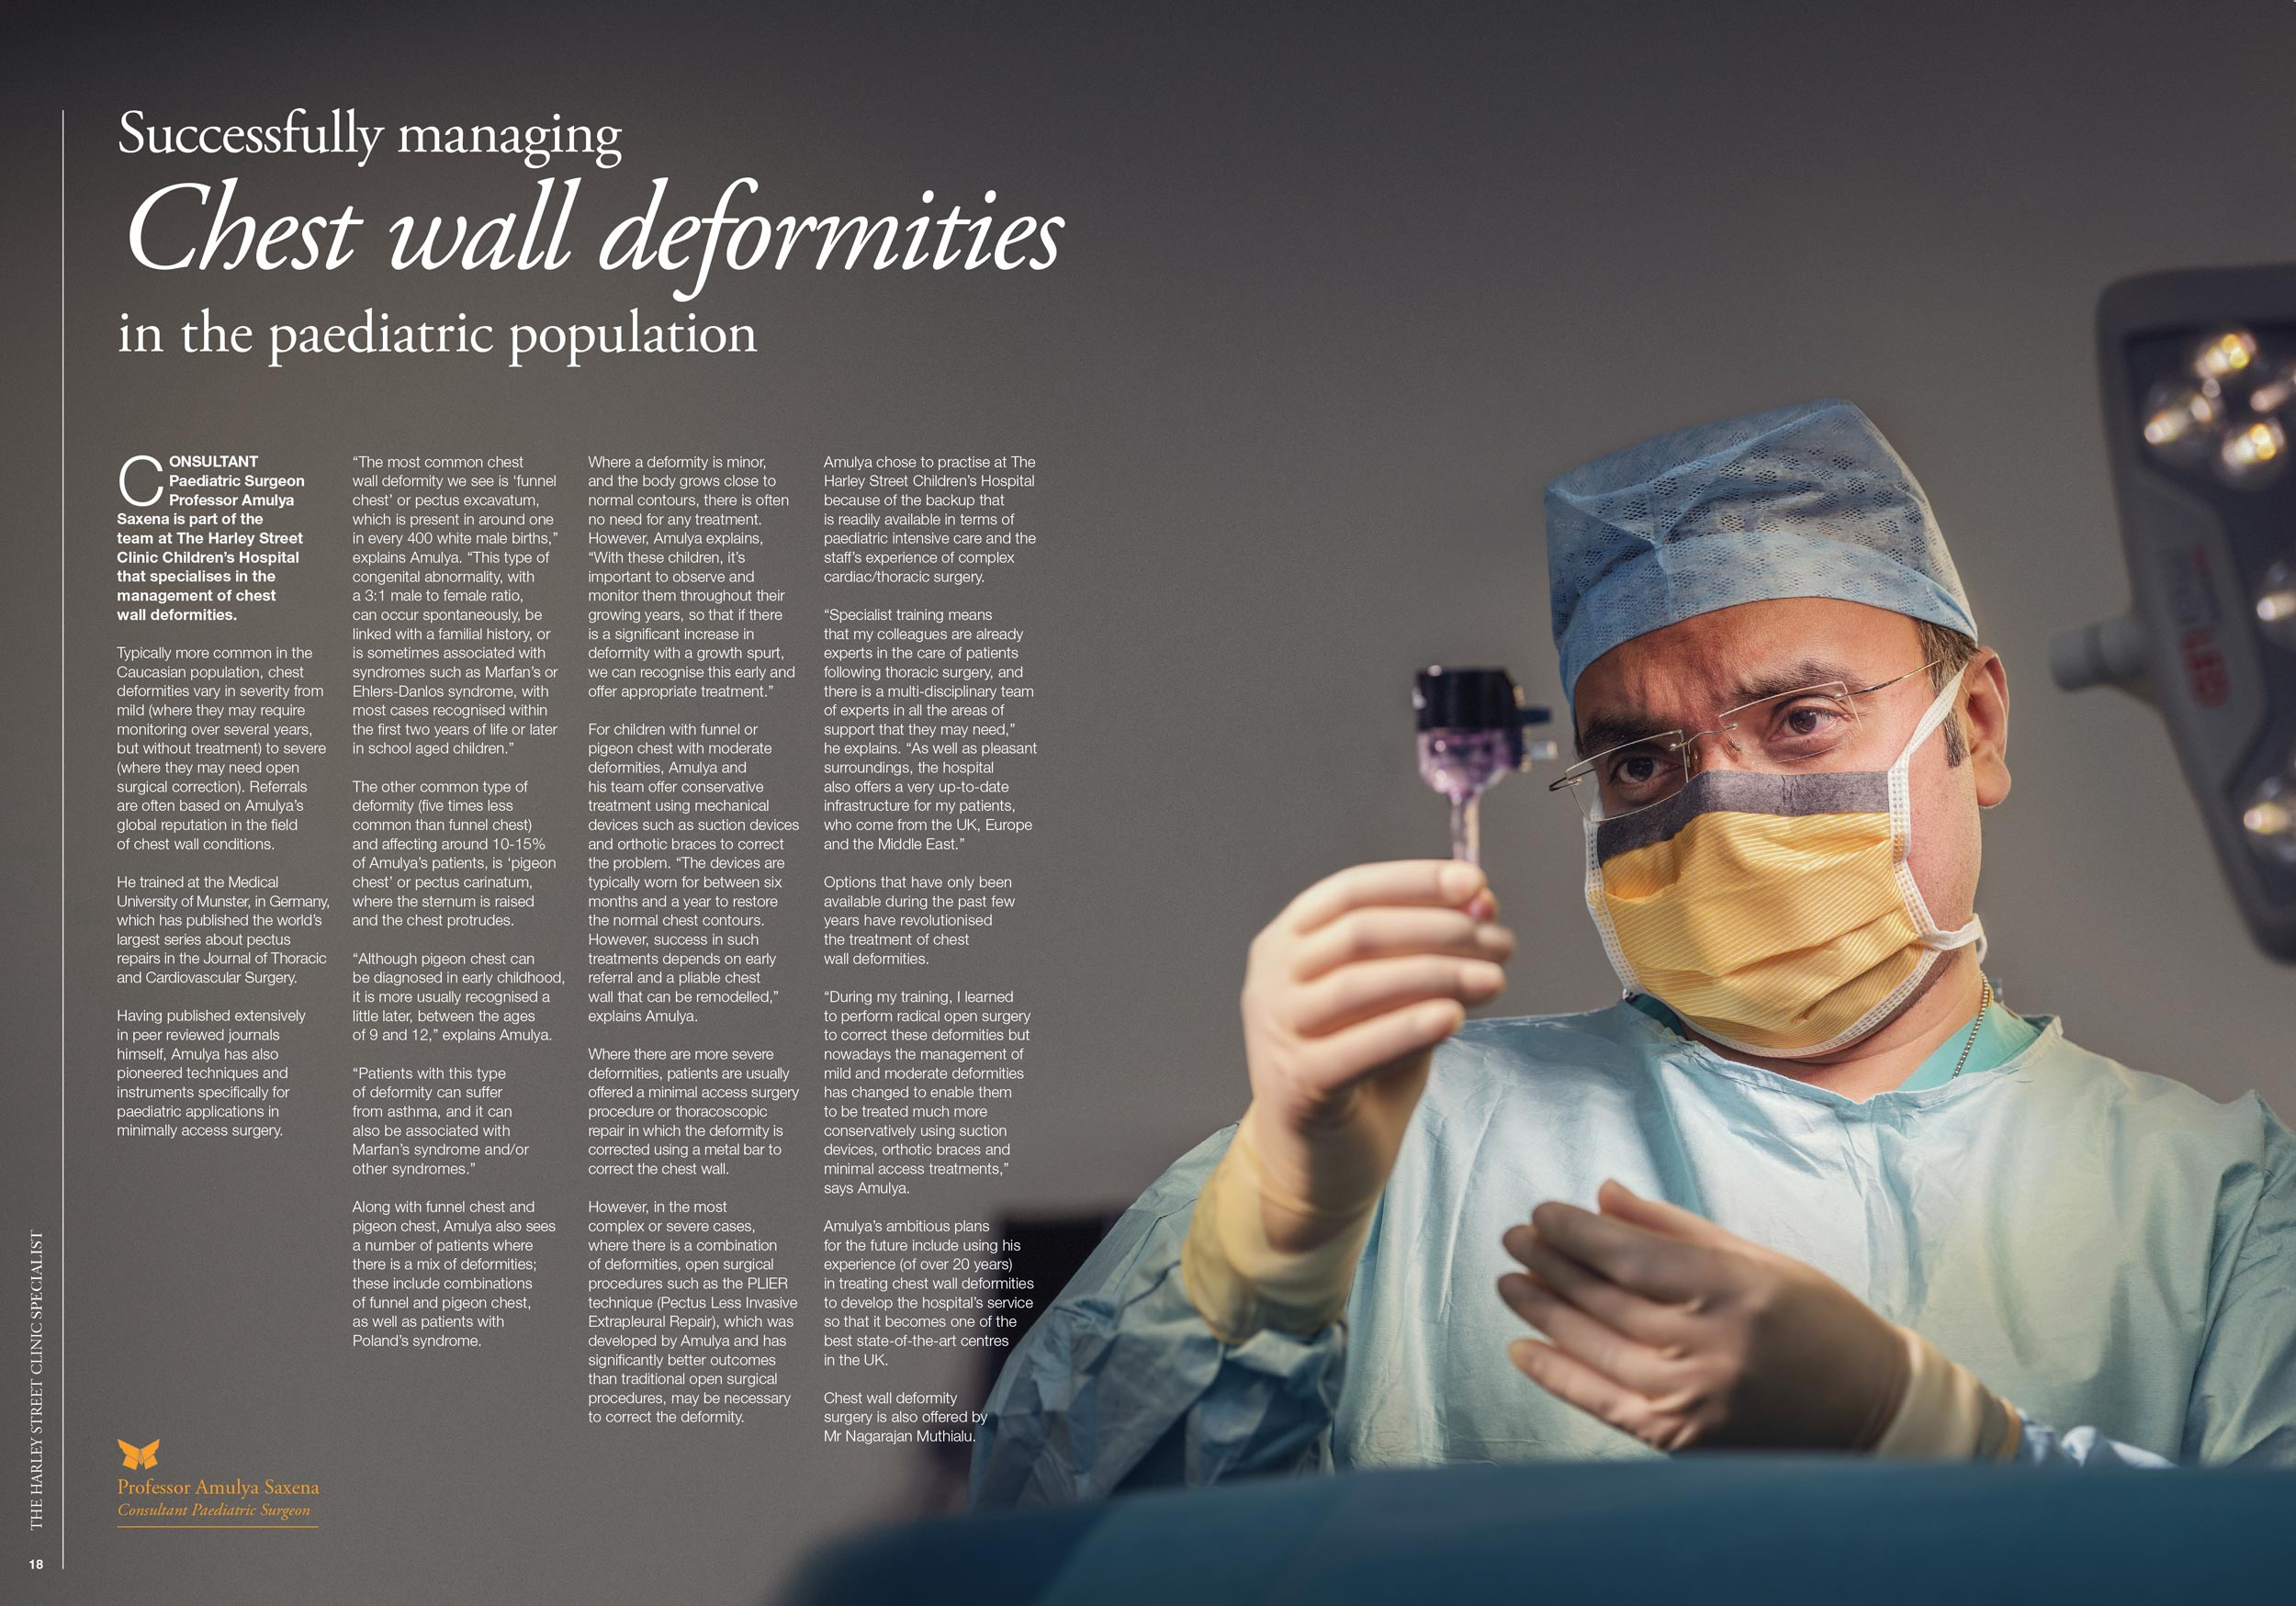 Consultant operating and performing surgery, magazine article